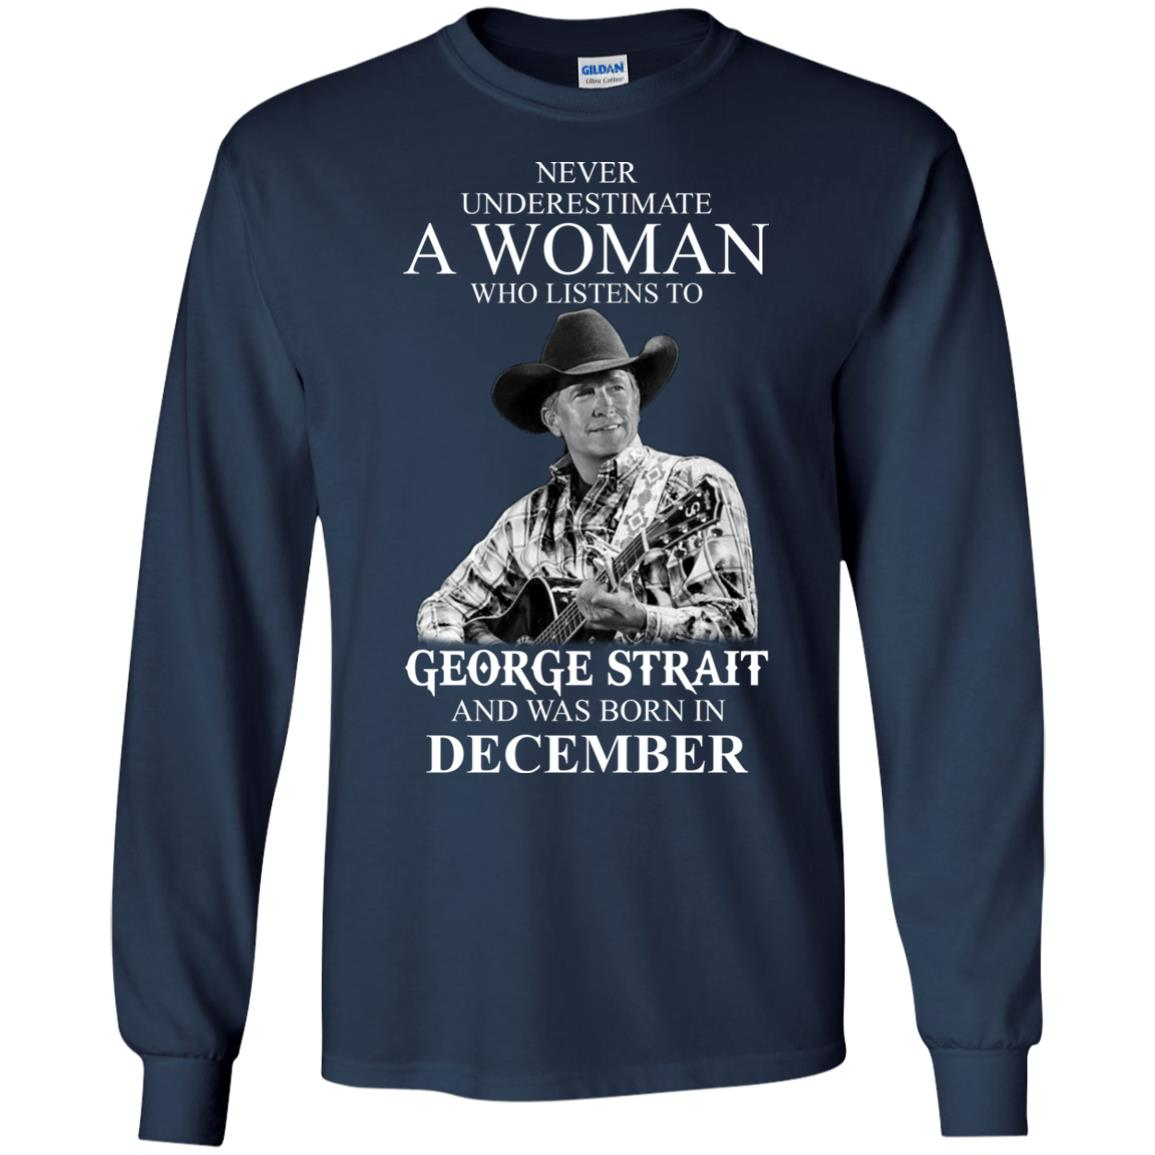 image 341 - Never Underestimate A Woman Who Listens To George Strait And Was Born In December shirt